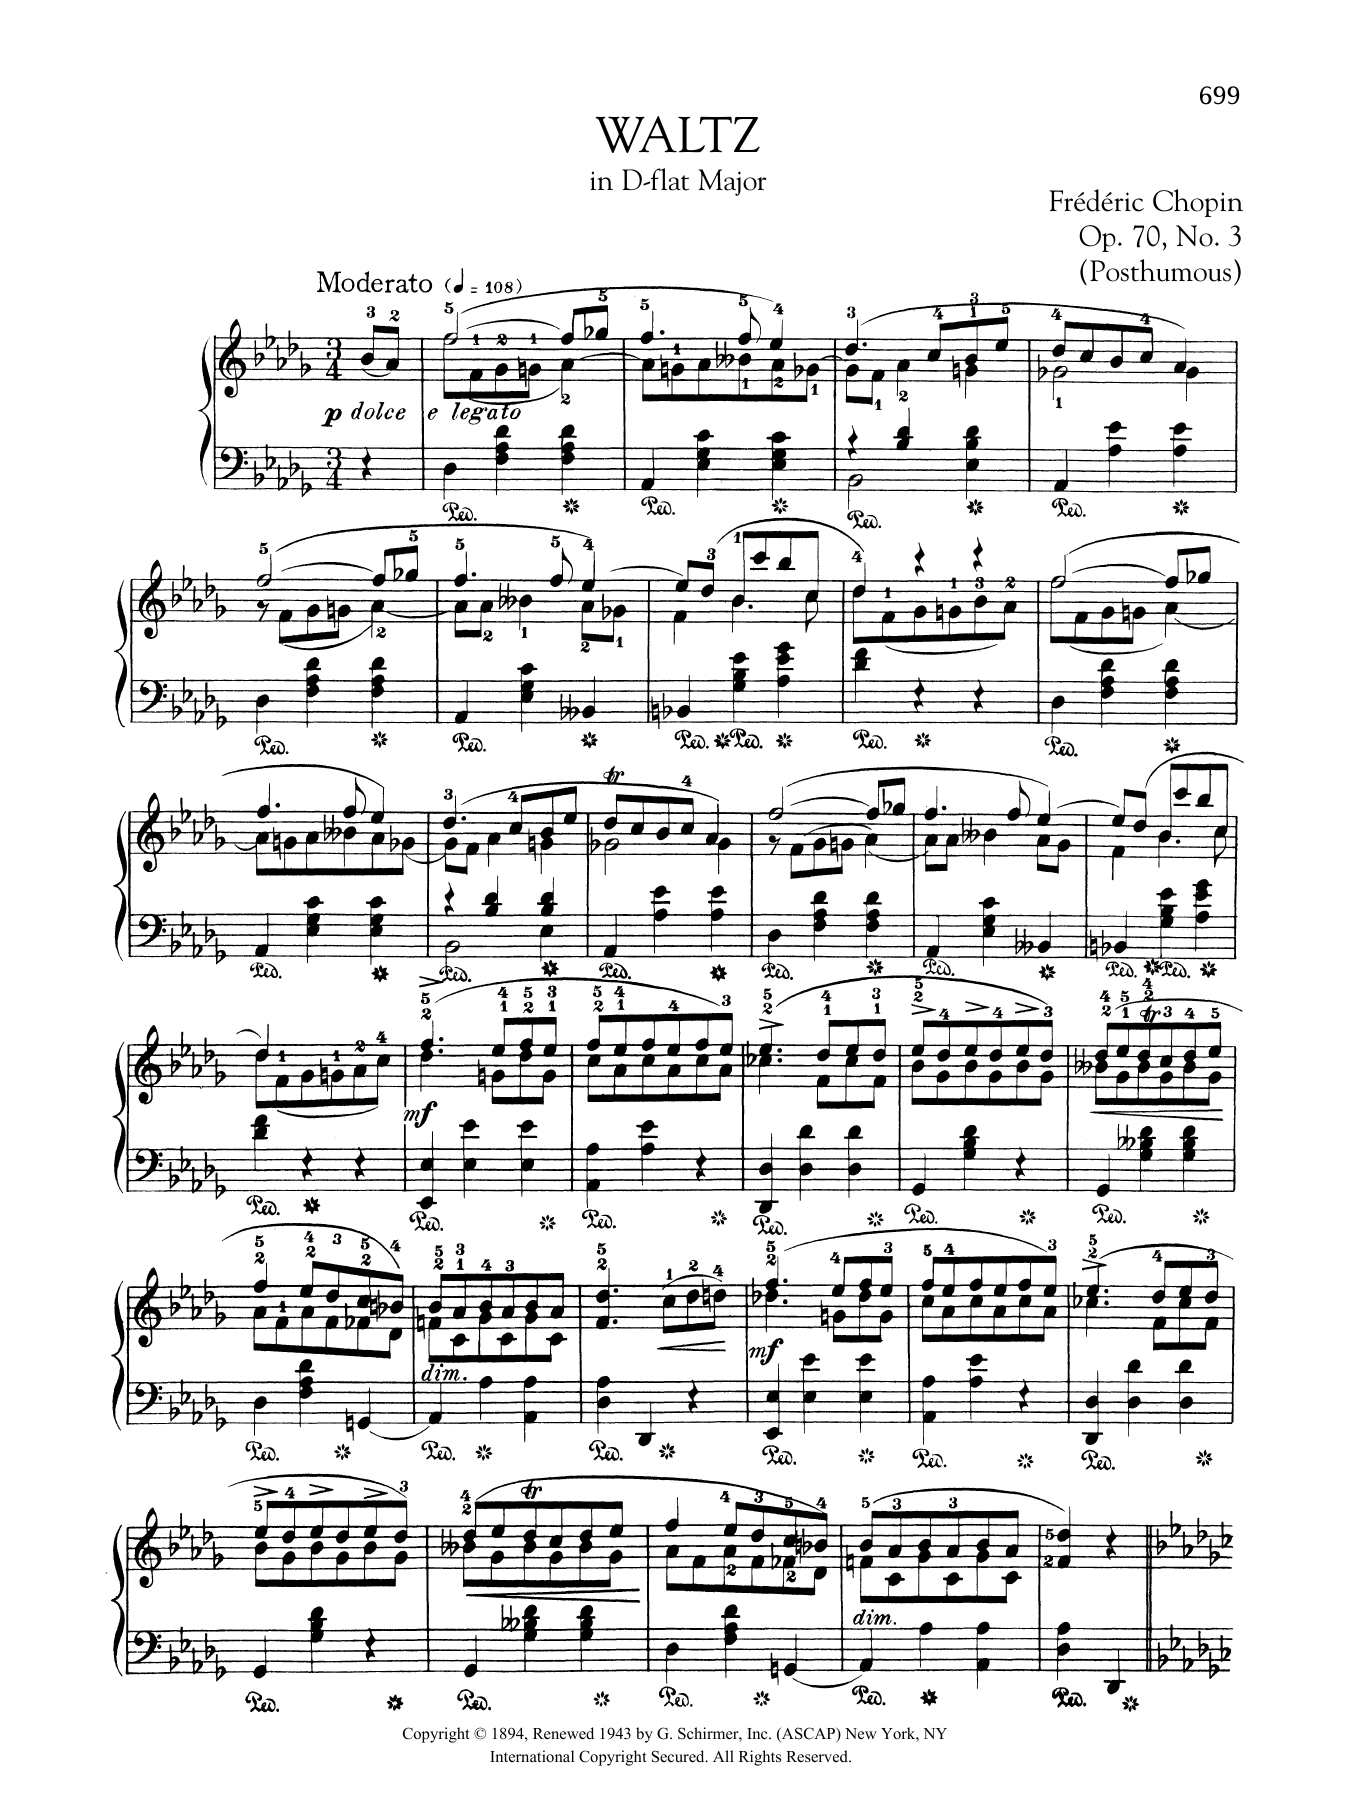 Waltz in D-flat Major, Op. 70, No. 3 (Posthumous)